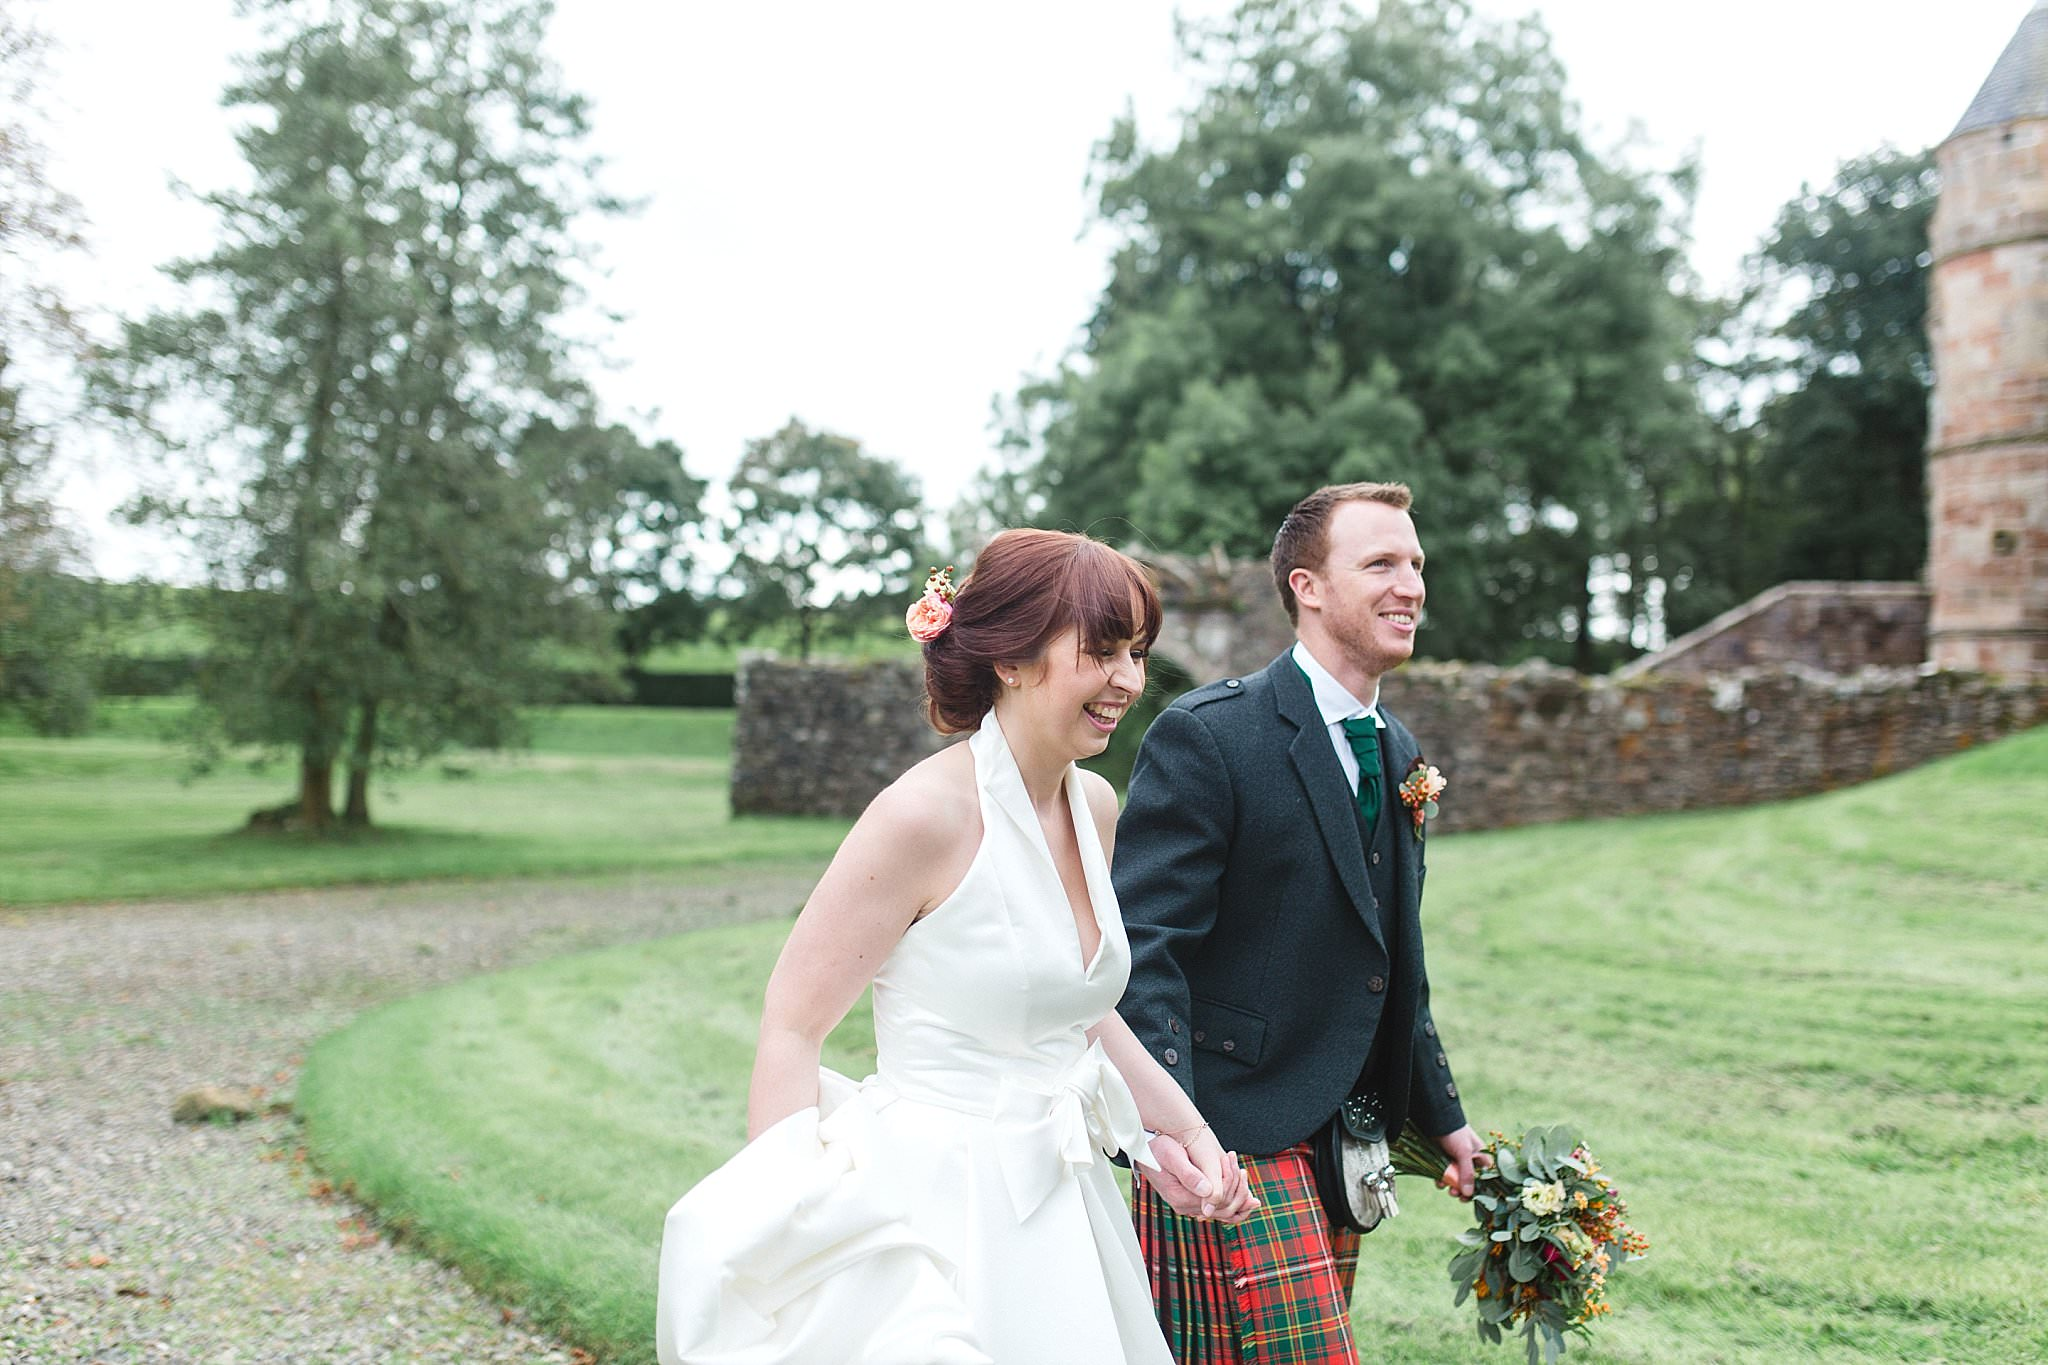 Fine Art Wedding Photographers Glasgow,Rowallan castle and events,The Gibsons,natural wedding photographers,romantic photographers Scotland,scottish fine art wedding photographers,wedding Rowallan Castle,